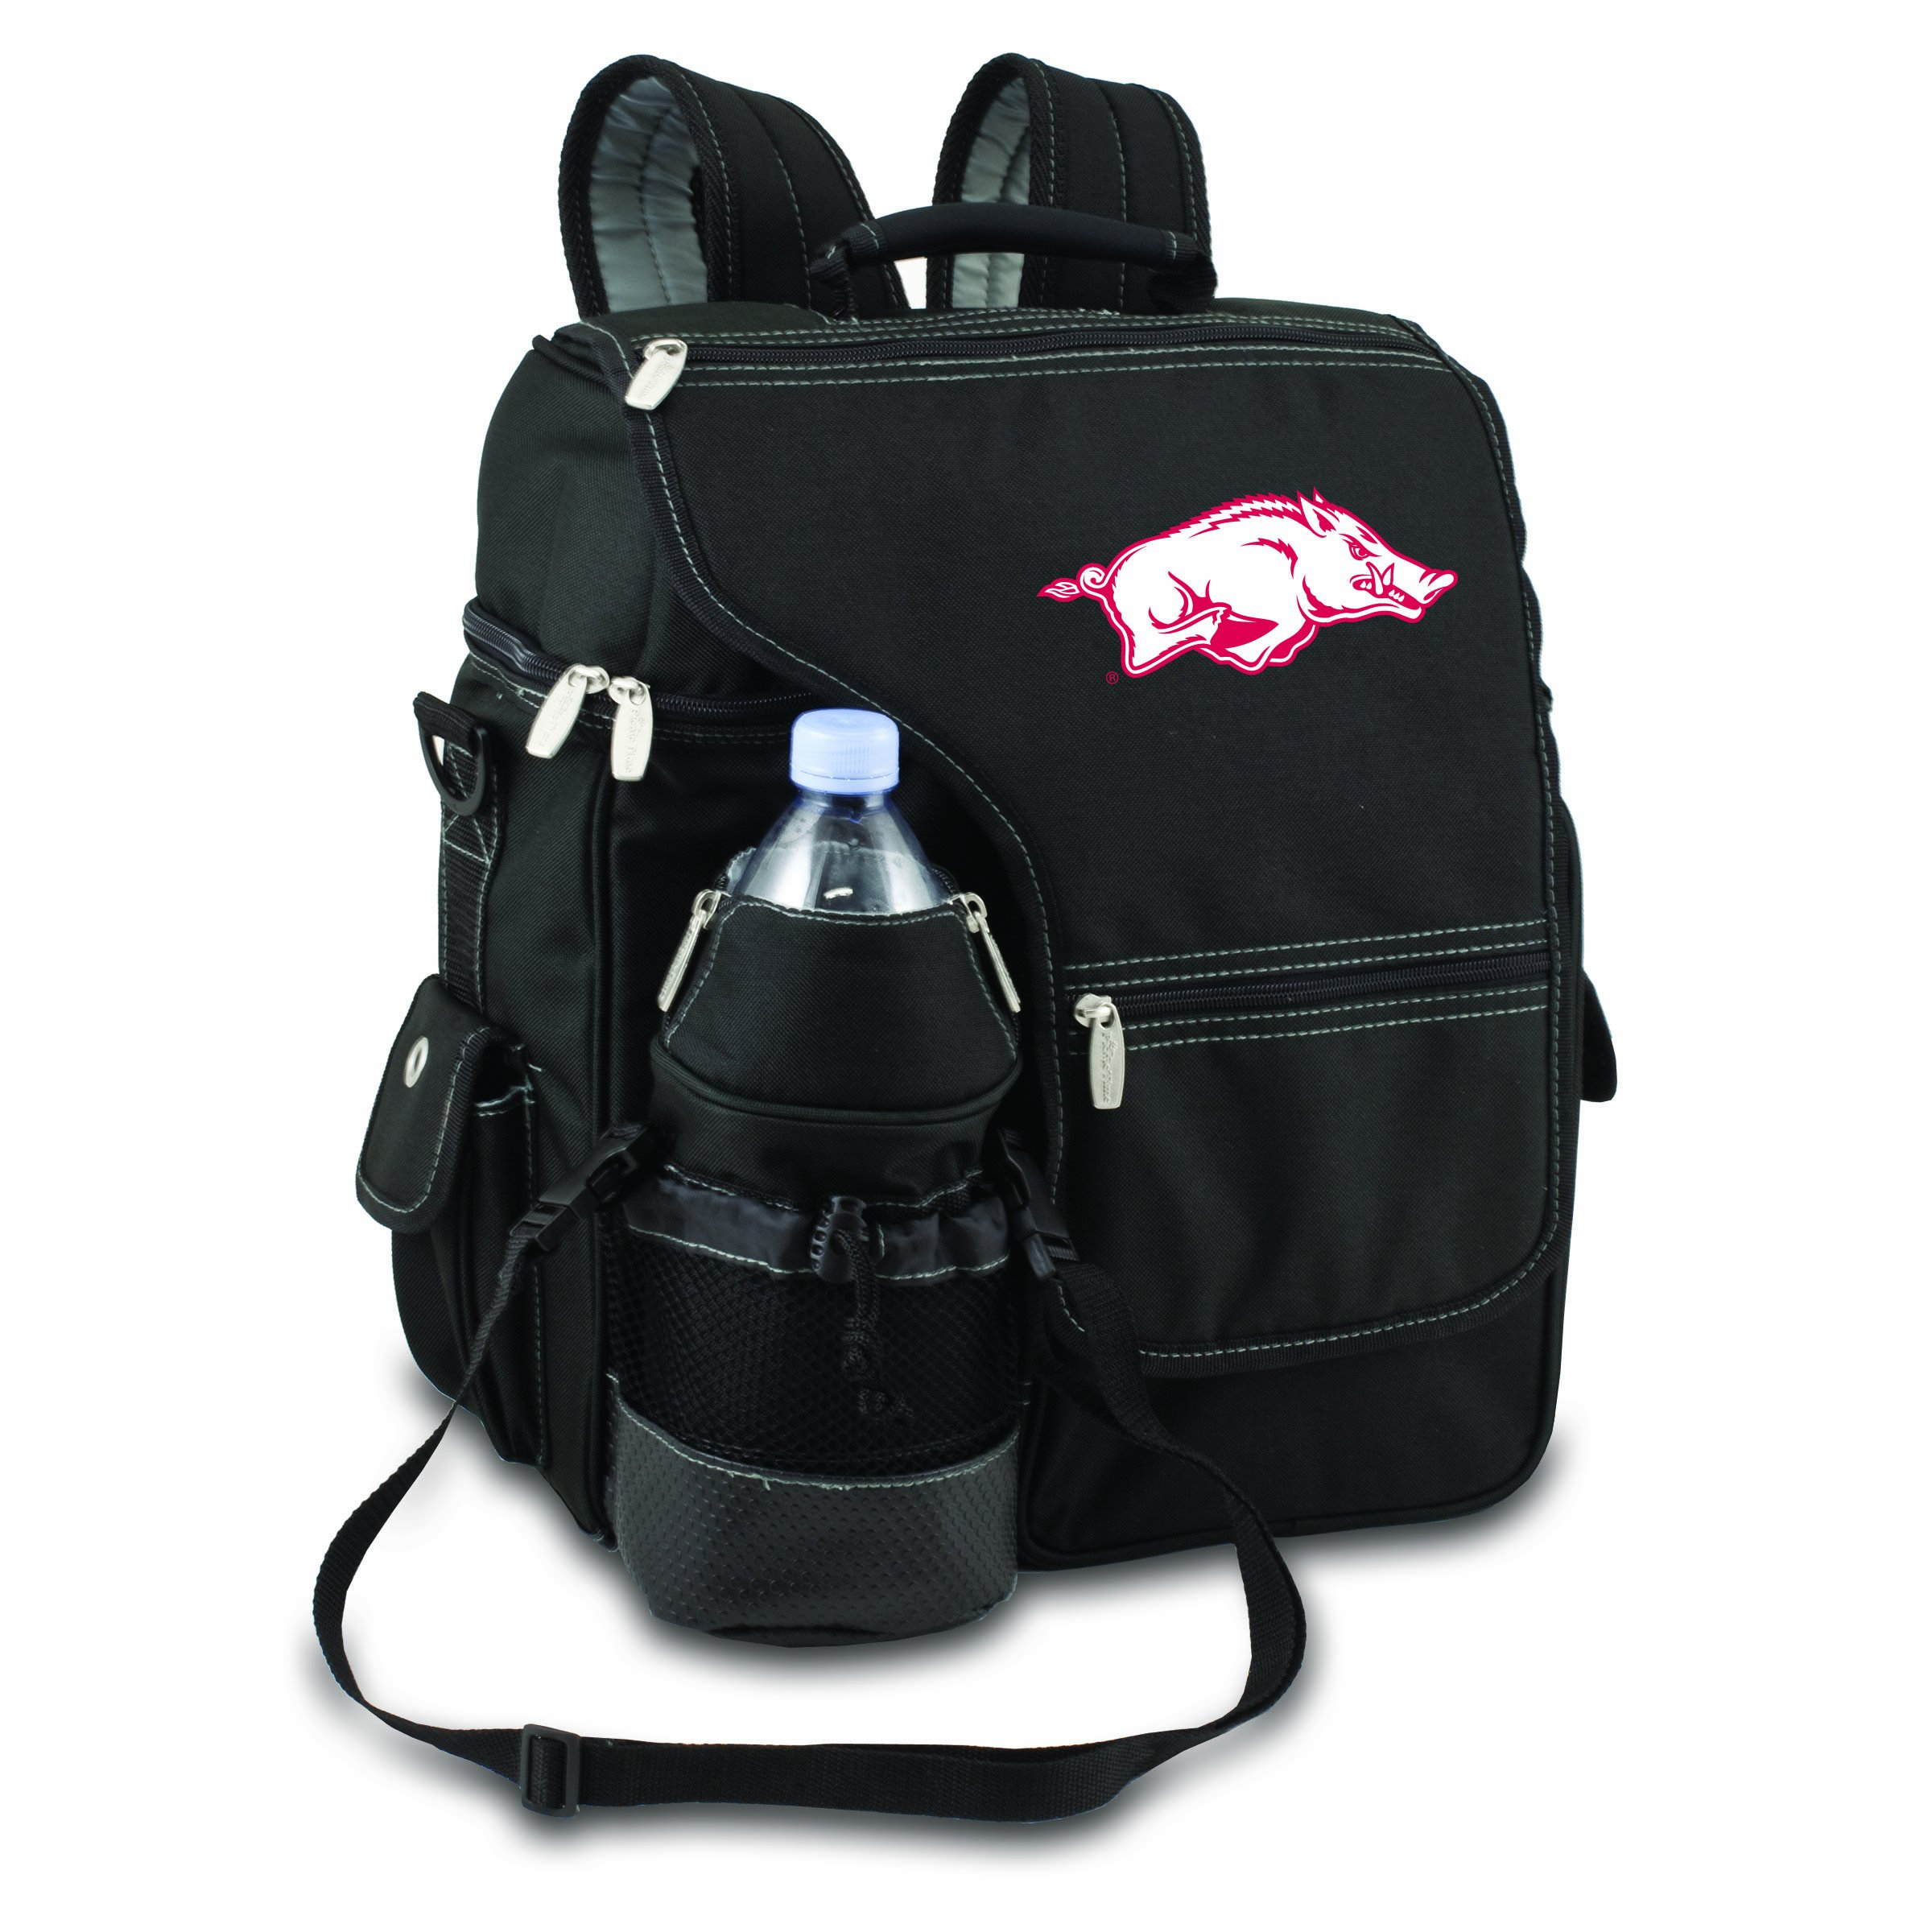 NCAA Arkansas Razorbacks Turismo Insulated Backpack Cooler